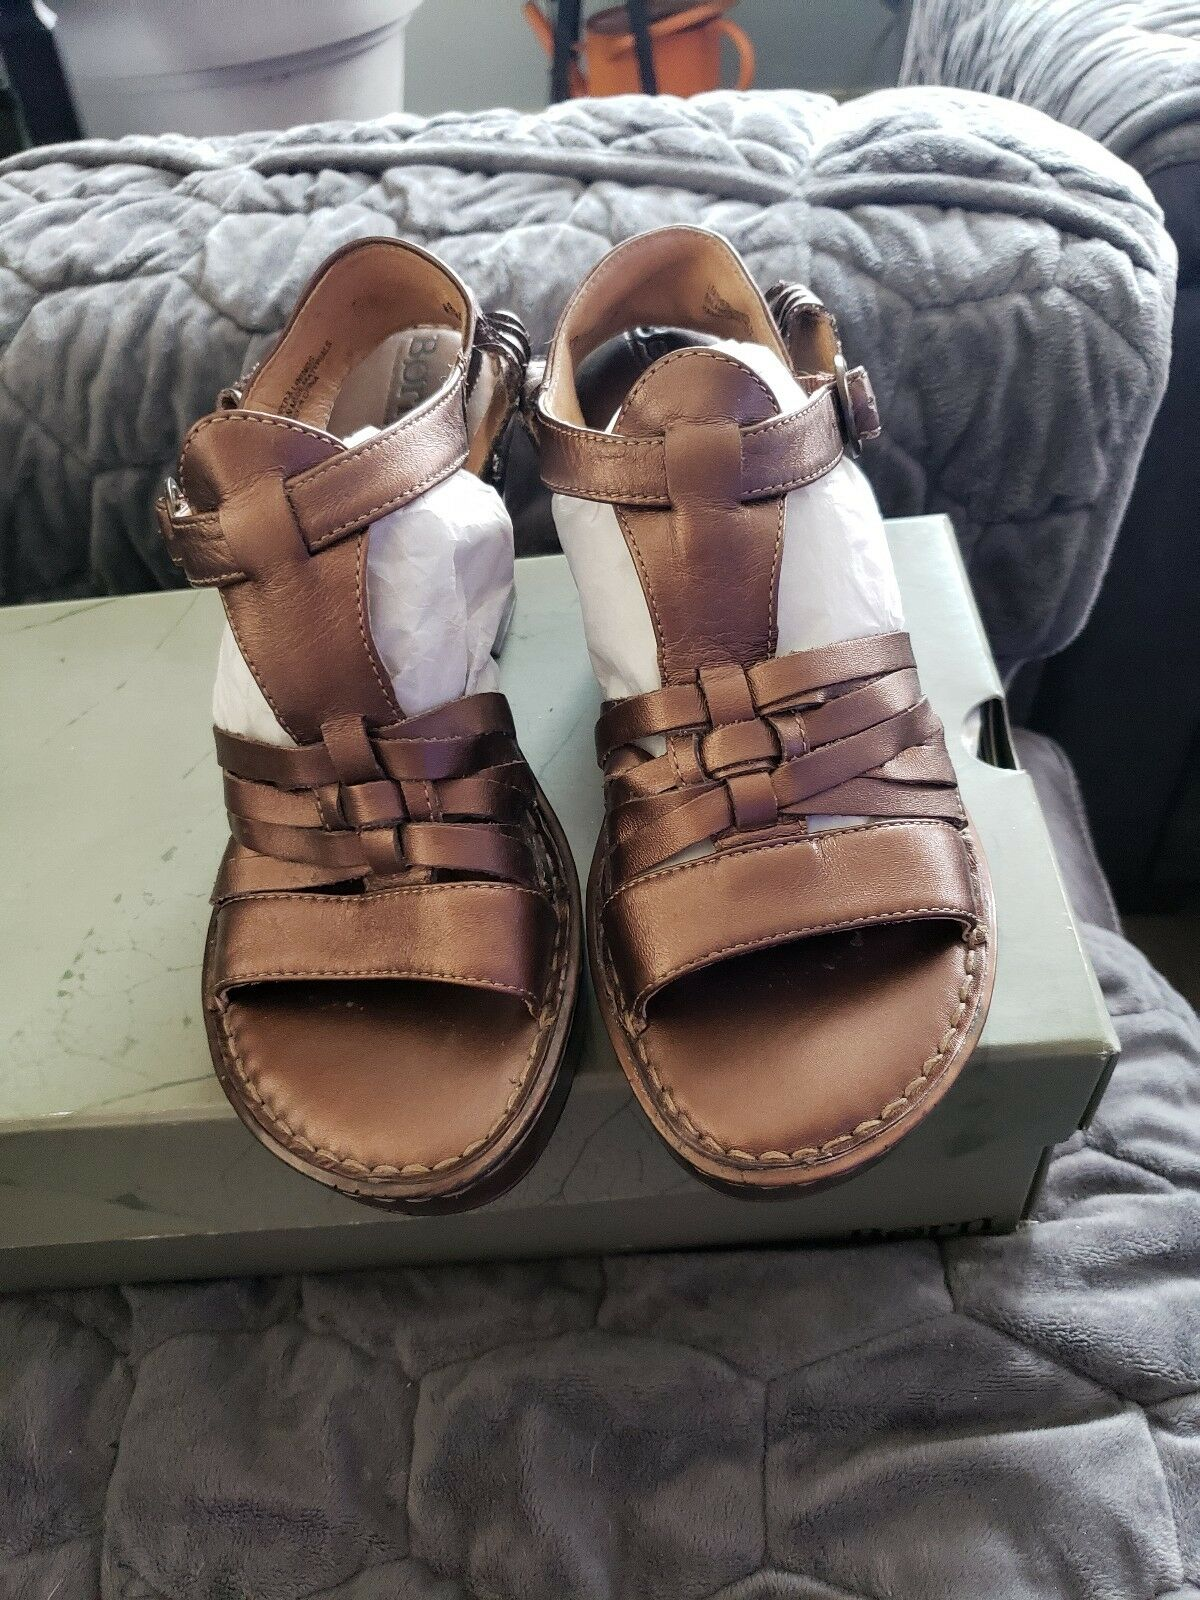 NEW Born Womens Lucio Sandles - Size 8  - gold Leather Wedge